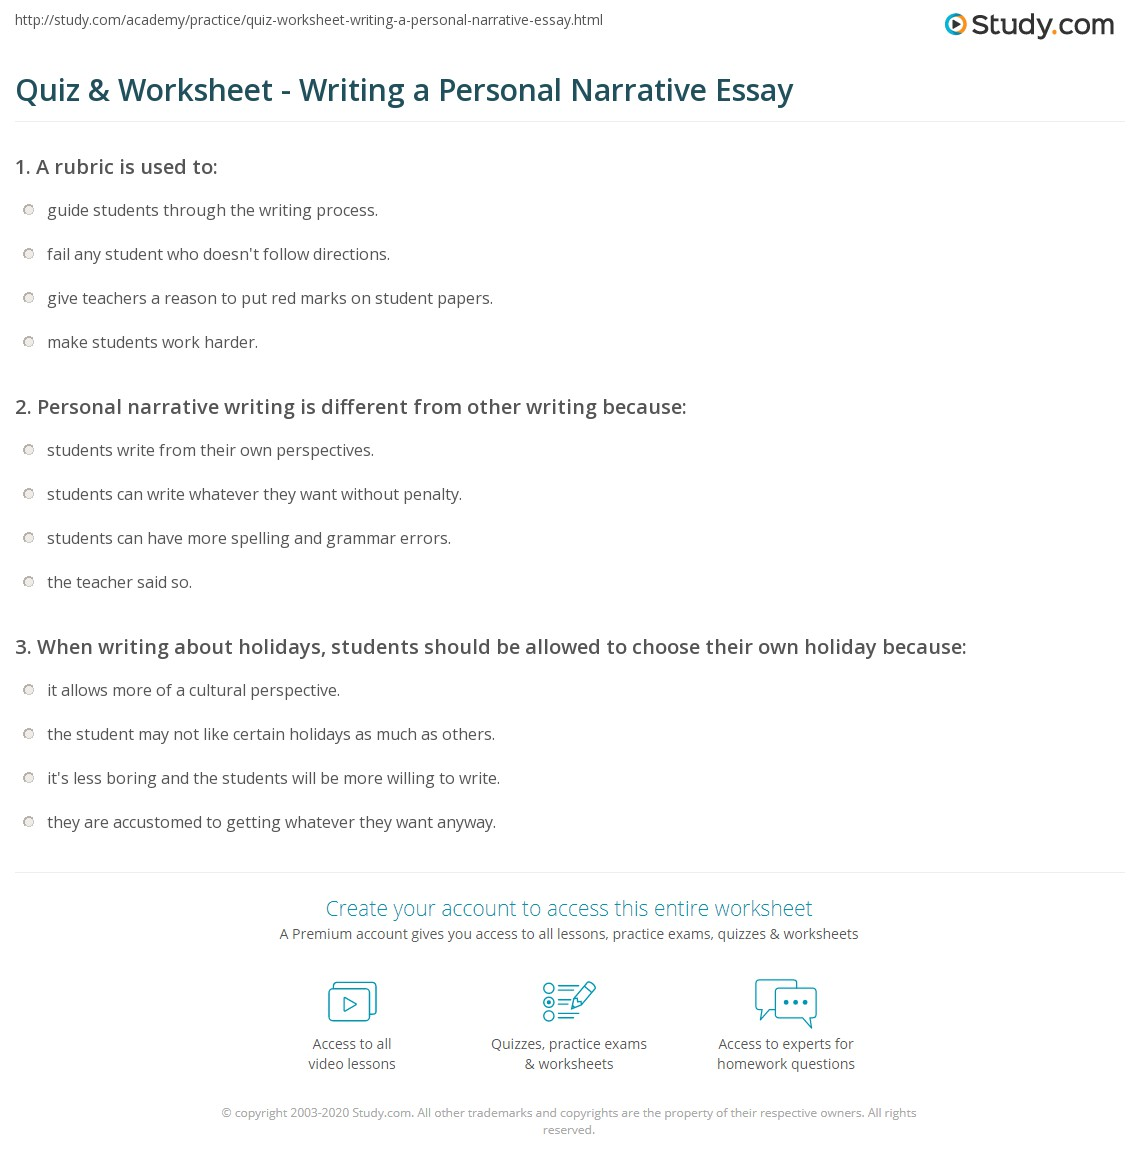 personal narrative essay about music Personal narrative essays, spring 2015 2 of 5 what did this conflict communicate to you about yourself, family, and/or society how might you communicate this.